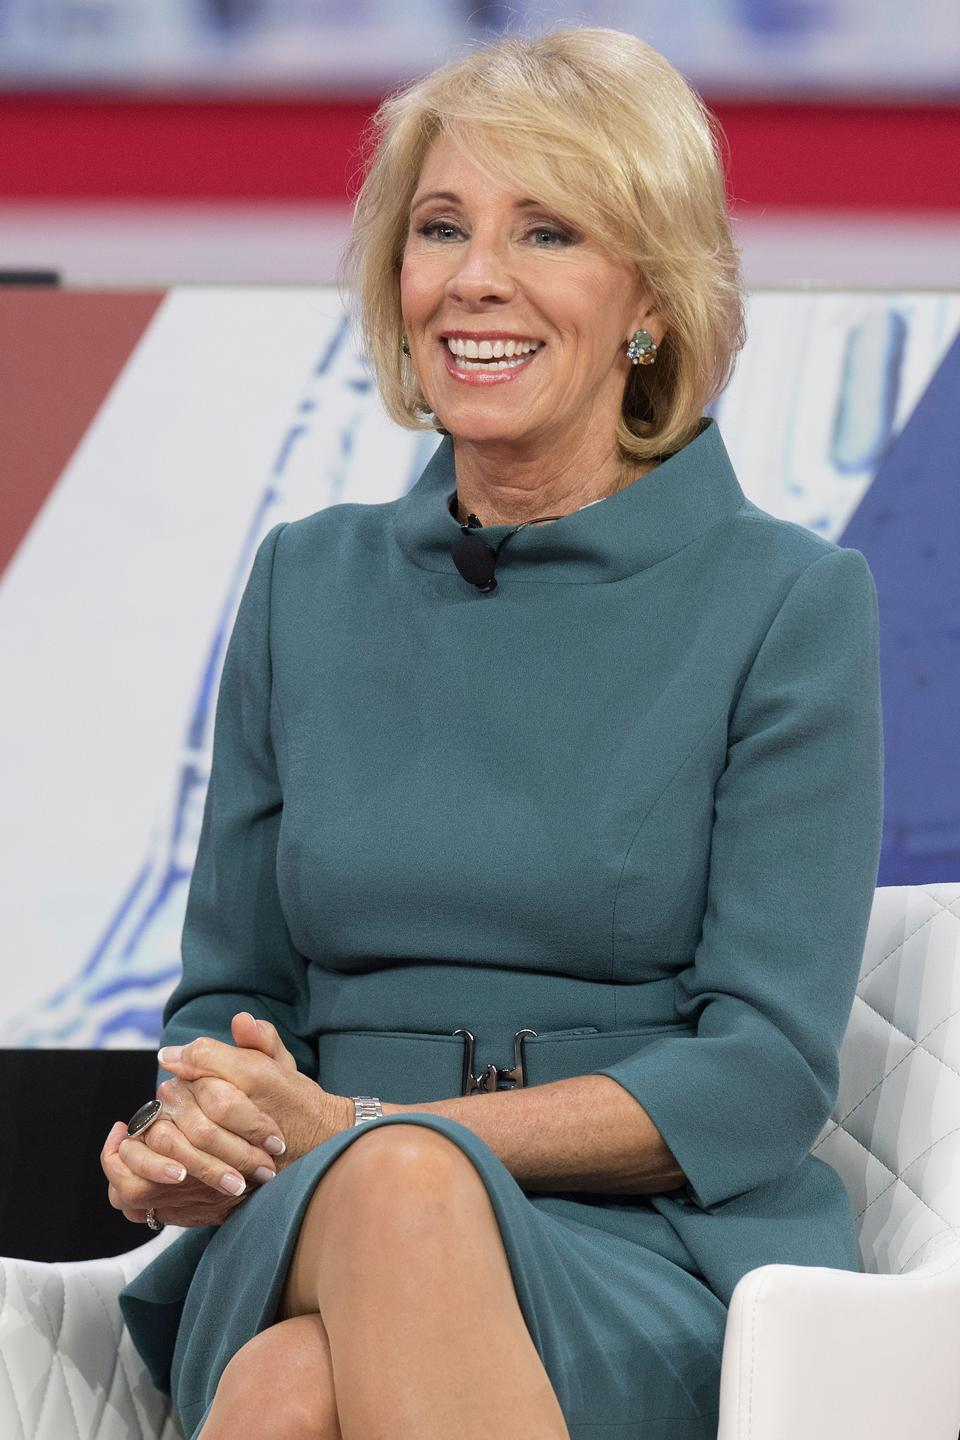 US-POLITICS-CONSERVATIVES Betsy DeVos, outgoing Secretary of Education in the Trump administration